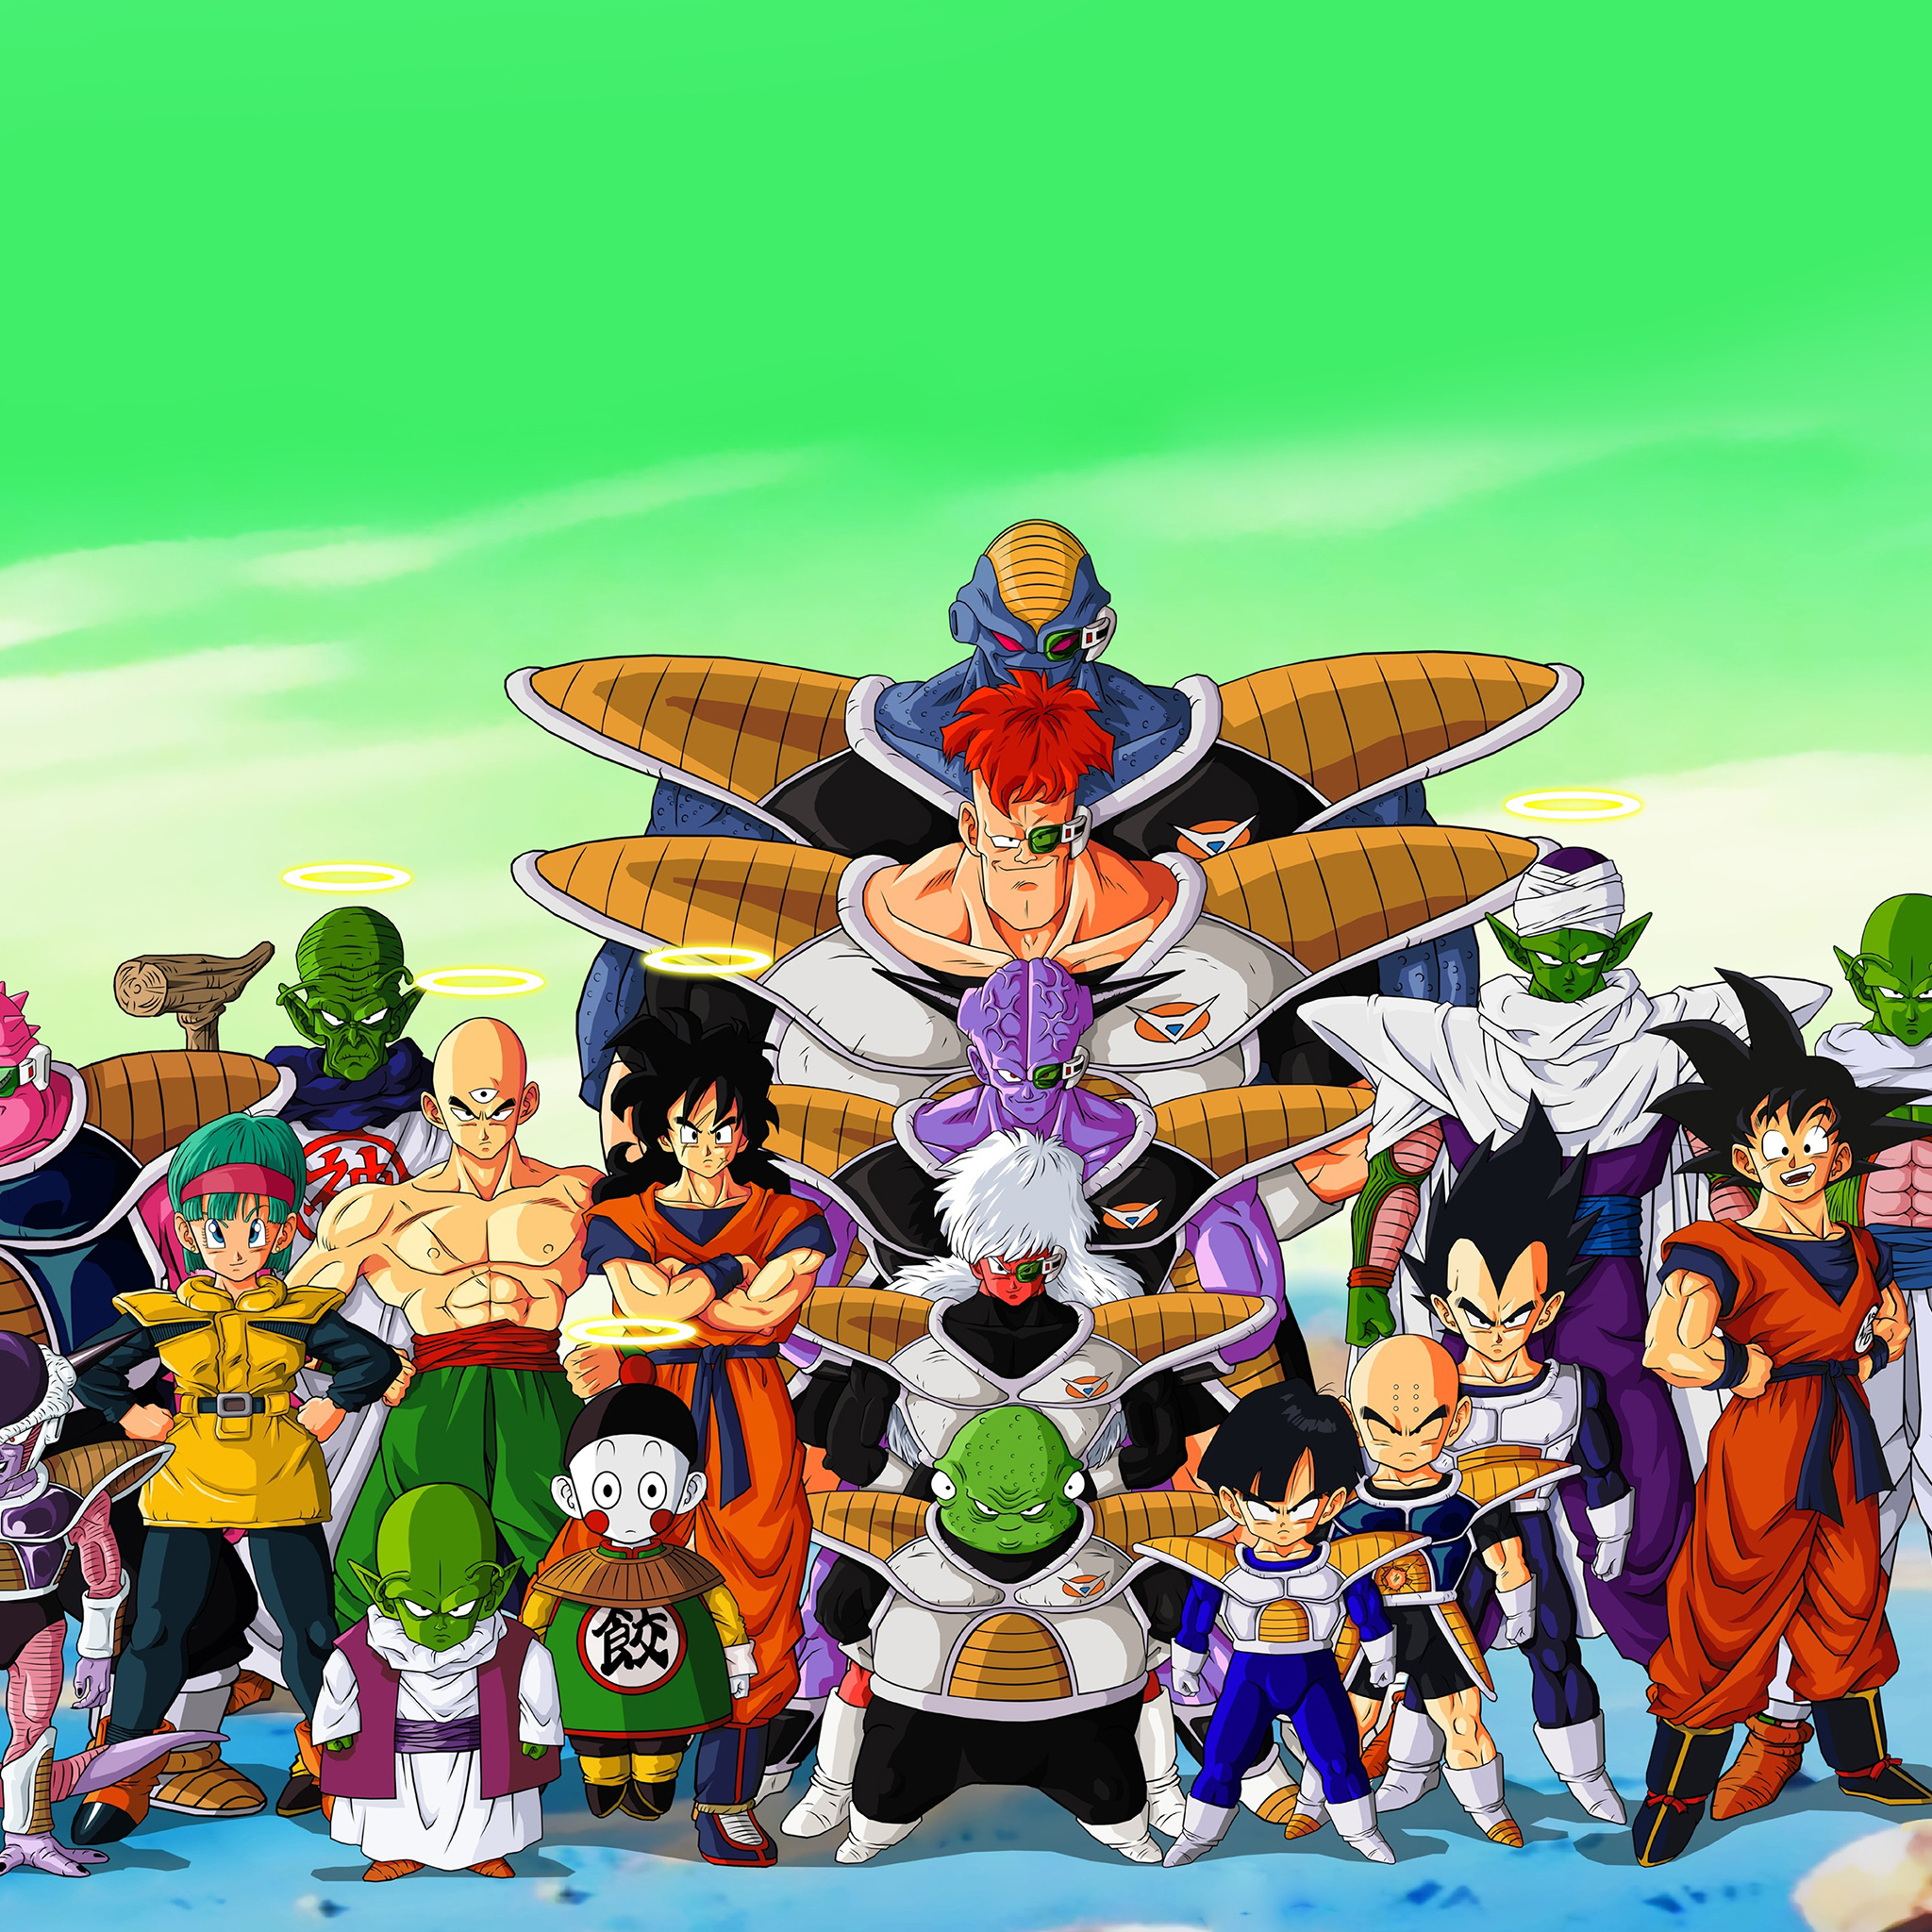 Dragon Ball Z Ipad Wallpaper Wallpapersafari